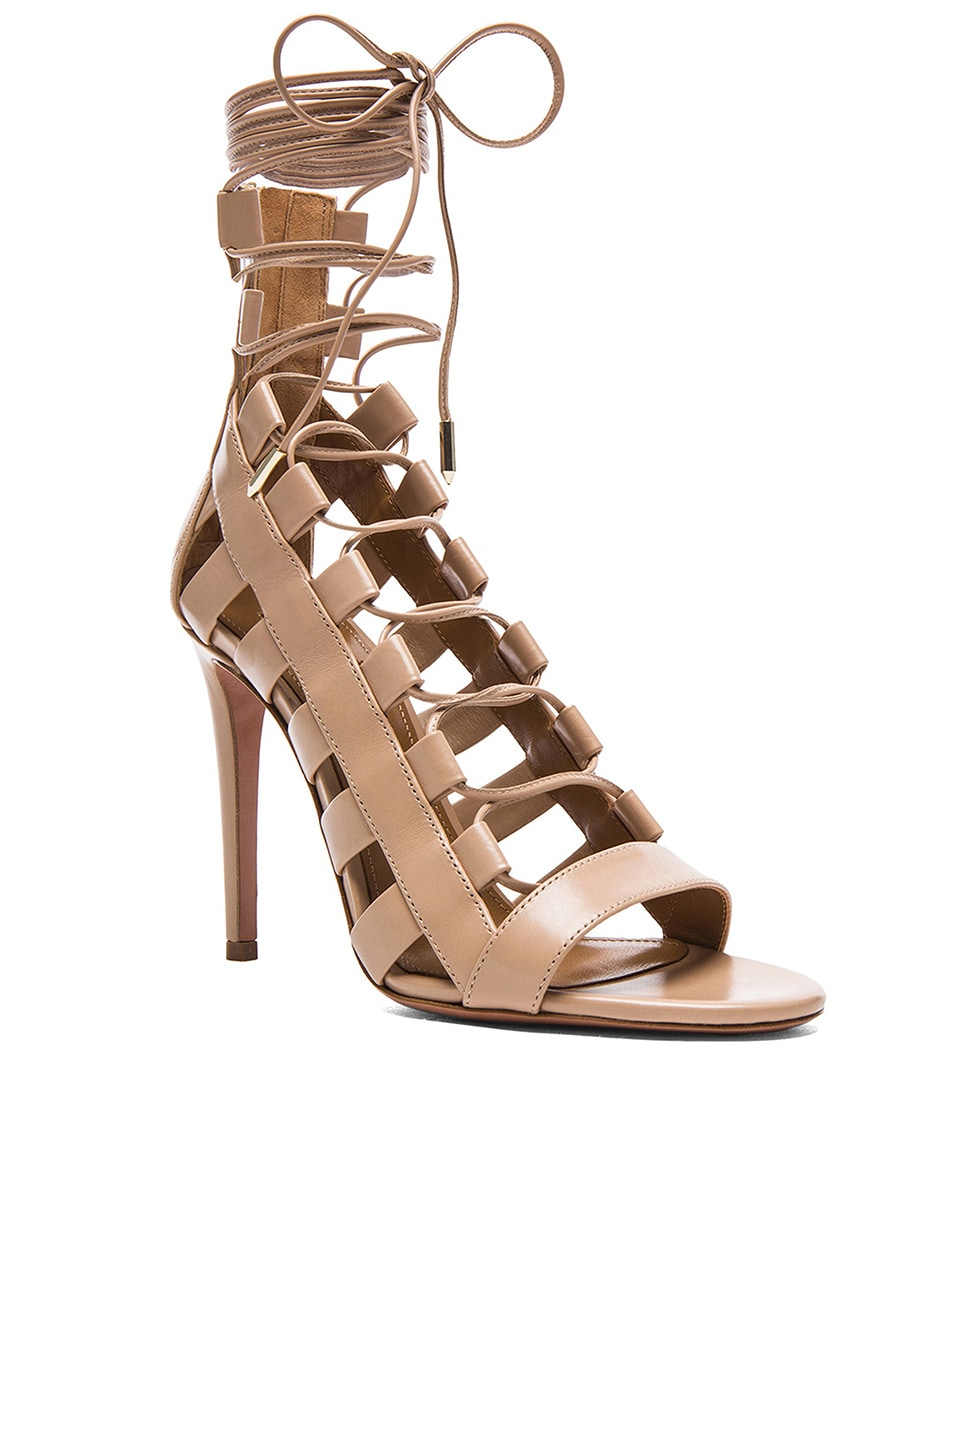 78f398a2fbd Image 2 of Aquazzura Amazon Leather Heels in Nude